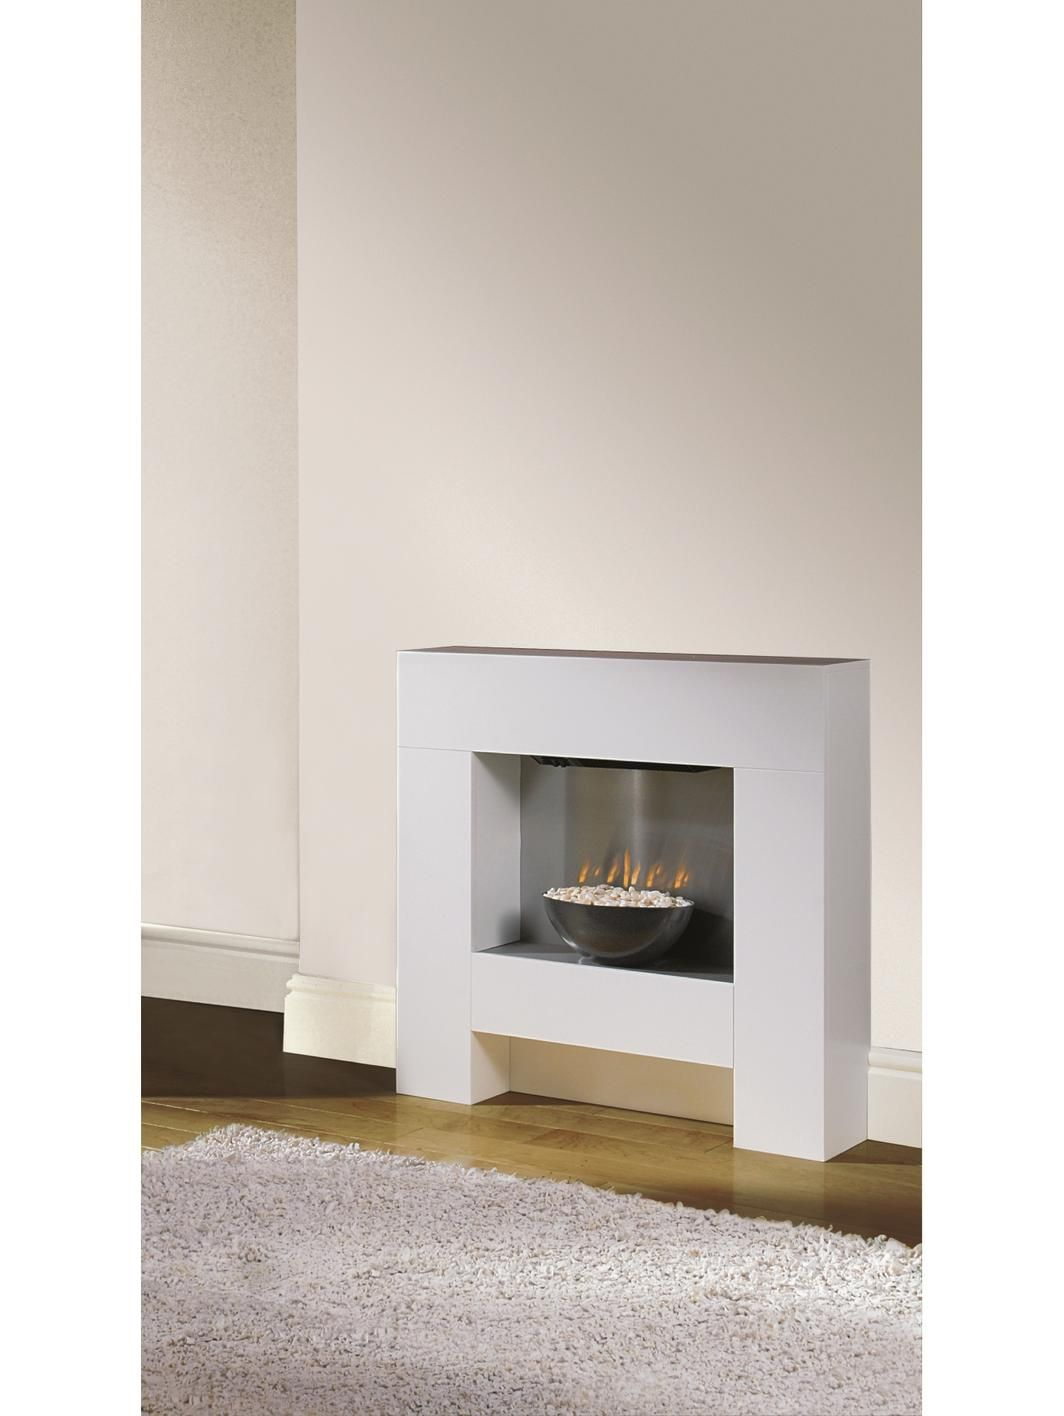 Bungalow Fireplace Mantel Adam Fire Surrounds Cubist Electric Fireplace Suite